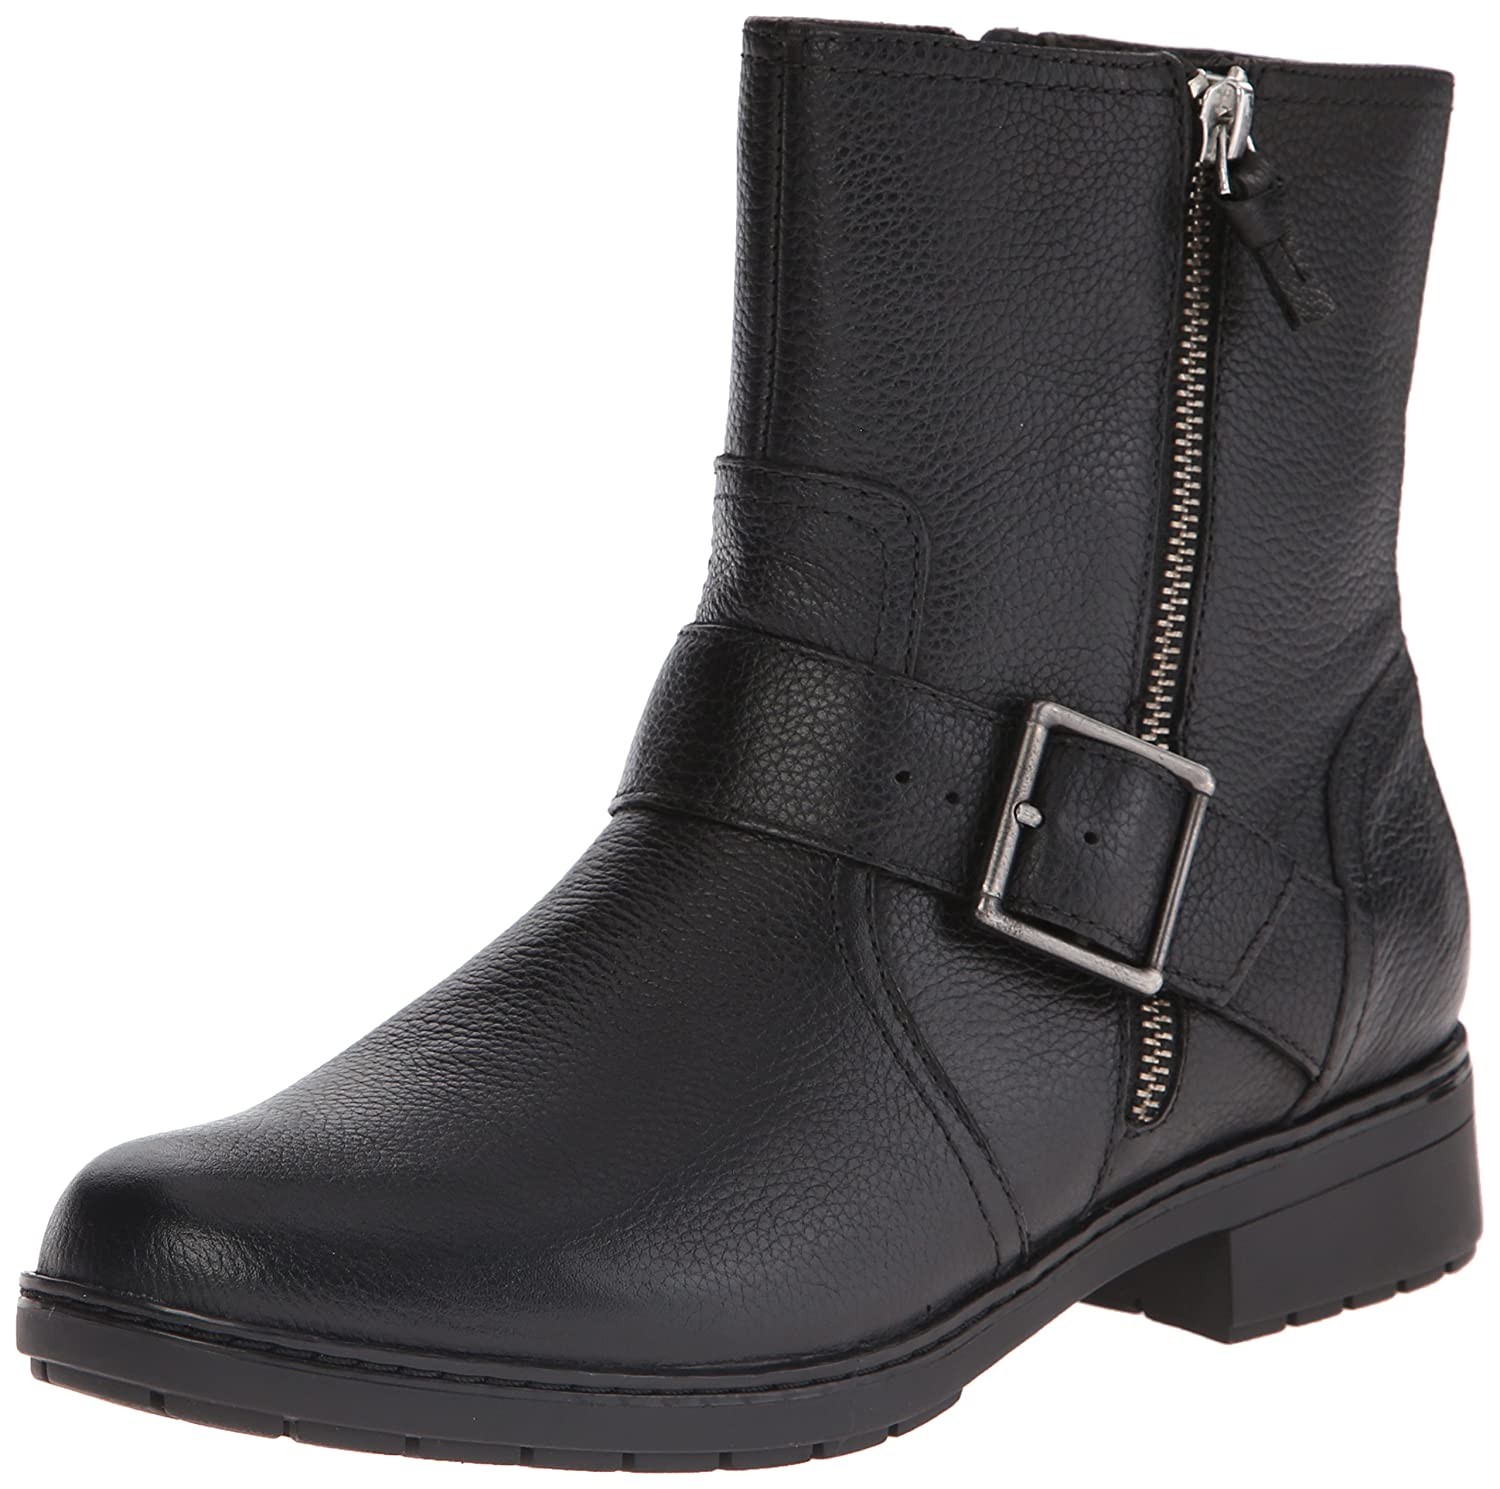 CLARKS Women's Merrian Lynn Boot B00TUCASYC 8.5 B(M) US|Black Leather